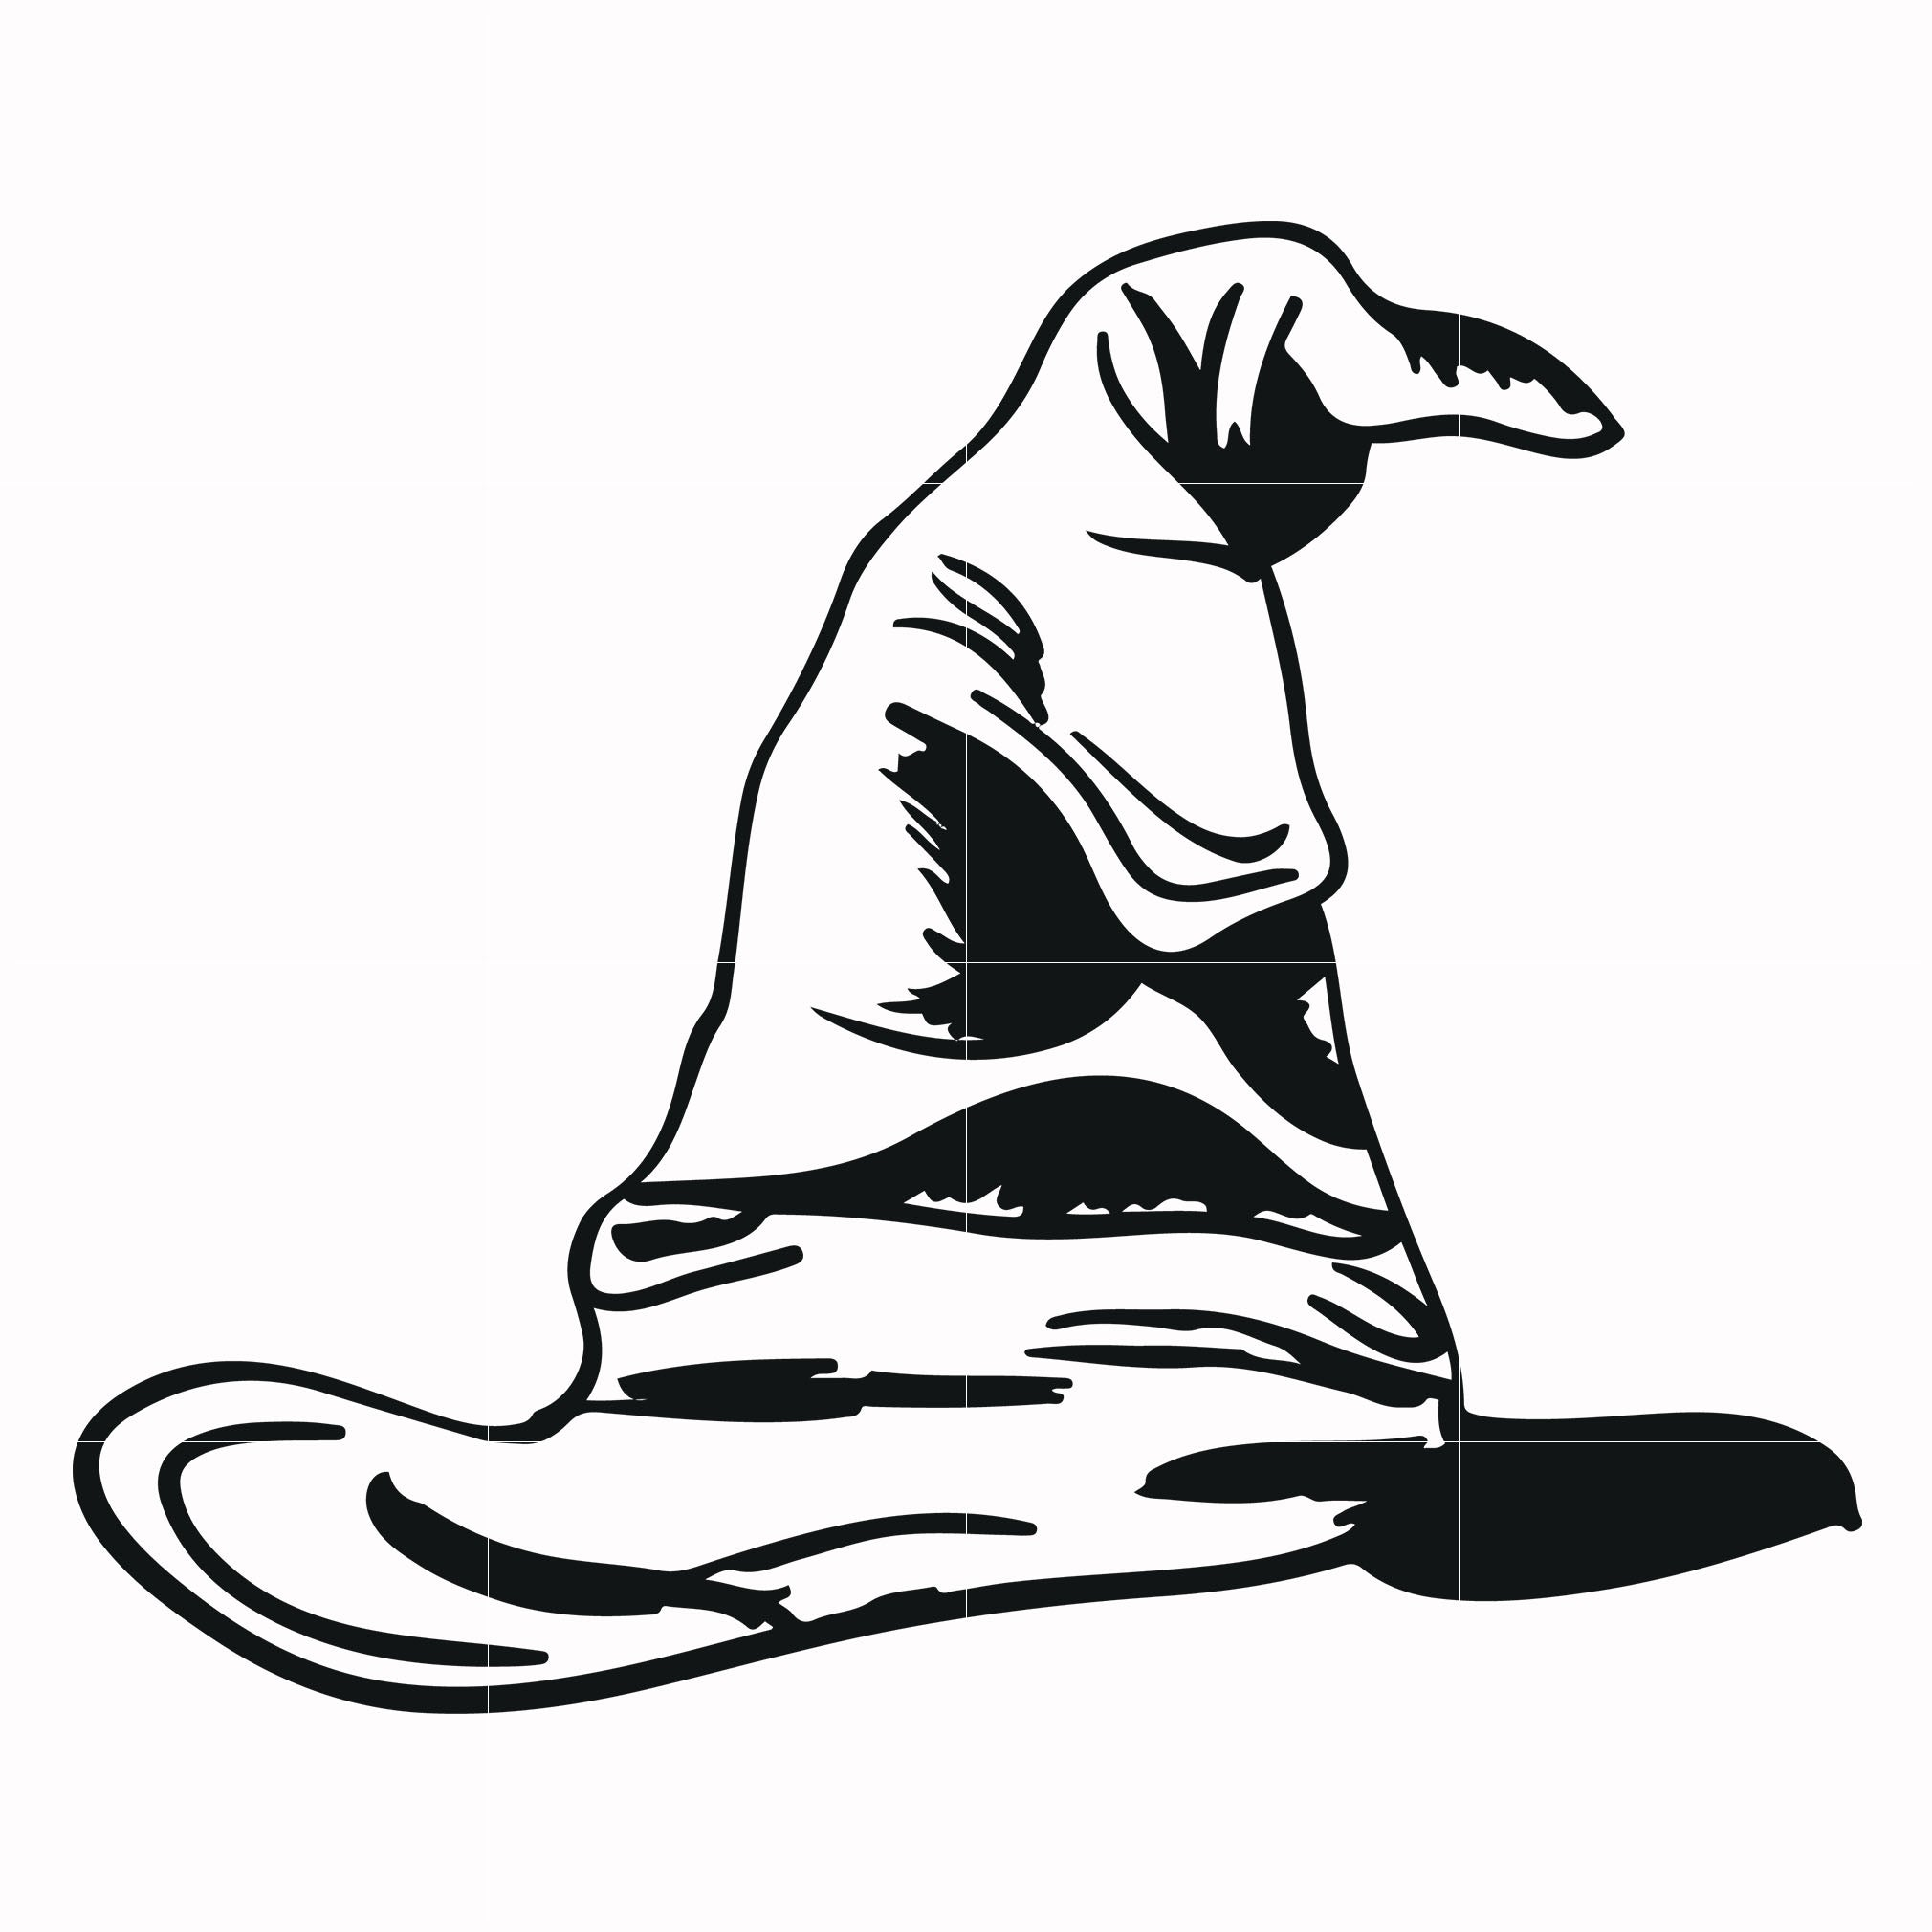 Sorting hat svg, potter svg for cut, svg, dxf, eps, png digital file